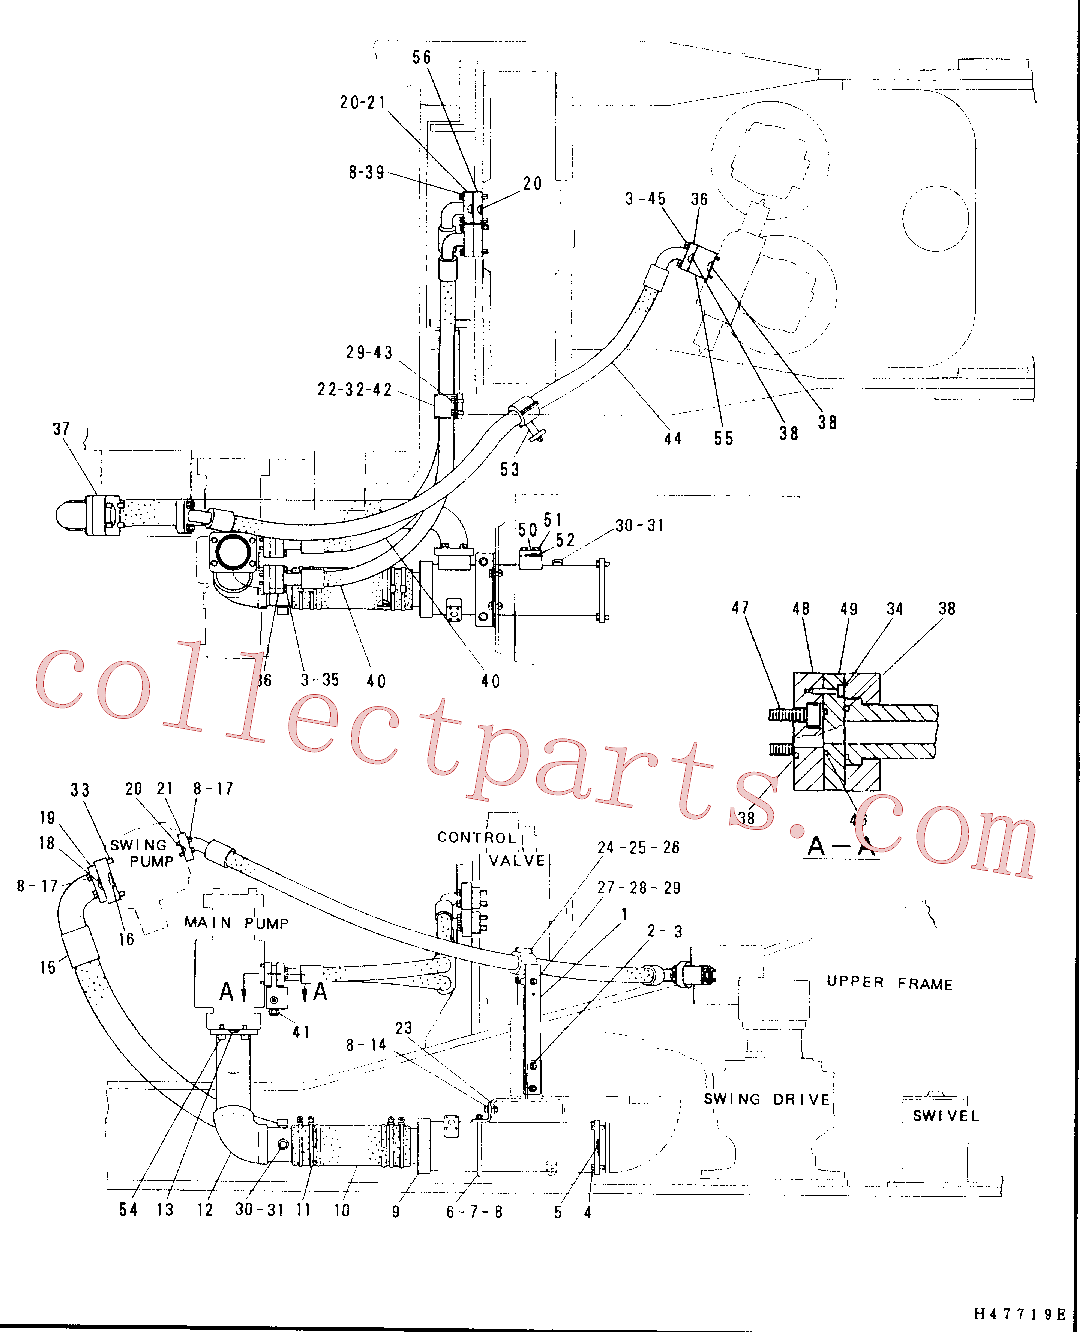 CAT 104-8740 for 350 L Excavator(EXC) hydraulic system 4I-0948 Assembly